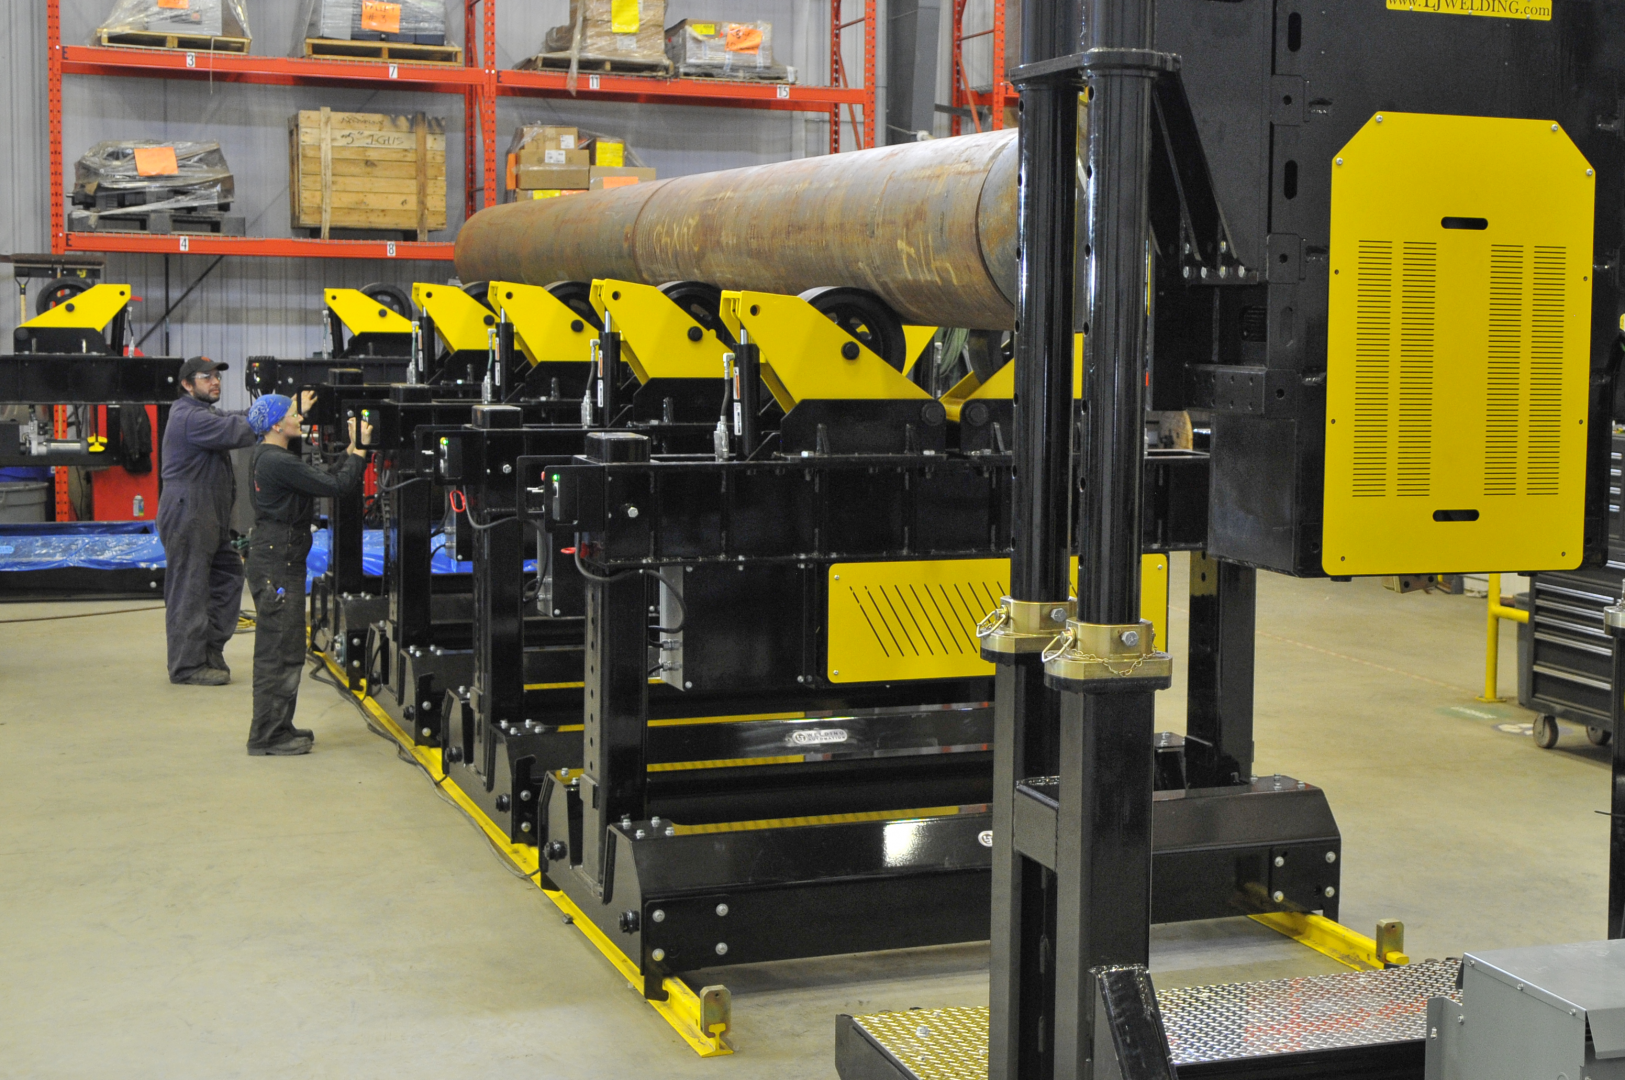 pipe and vessel material handling system for multi-purpose fabrication shops